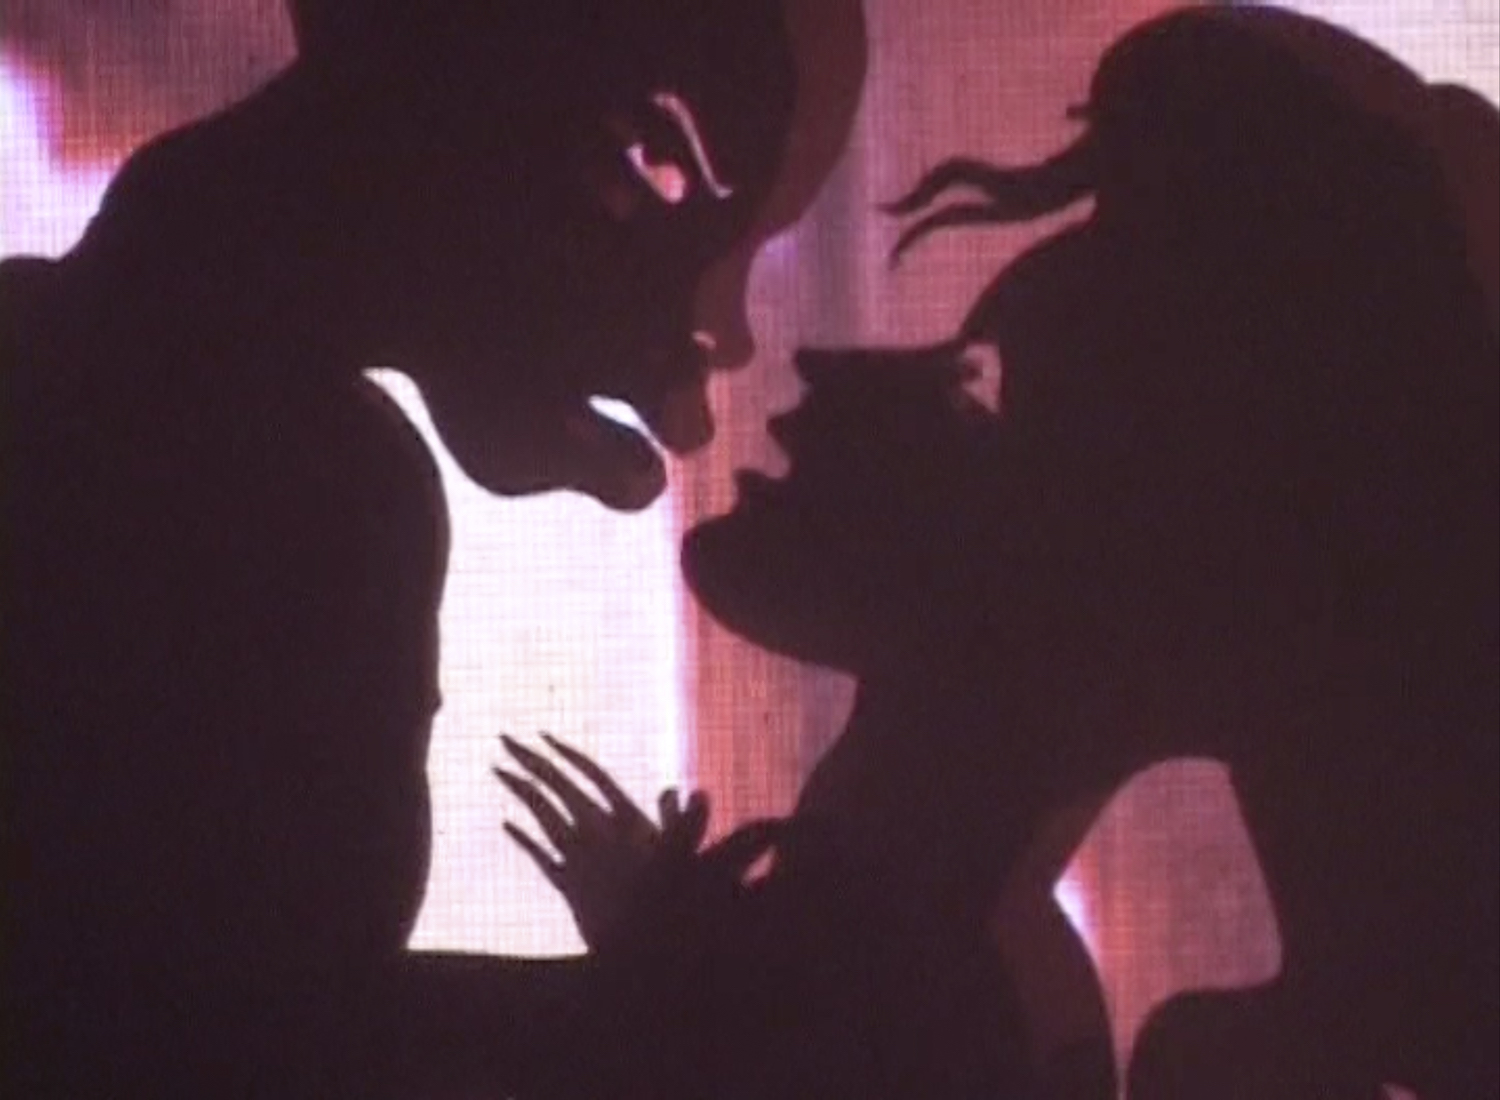 Kara Walker, Fall Frum Grace, Miss Pipi's Blue Tale (Film Still), 2011, Video (color, sound) © Kara Walker Courtesy Sprüth Magers and Sikkema Jenkins & Co.